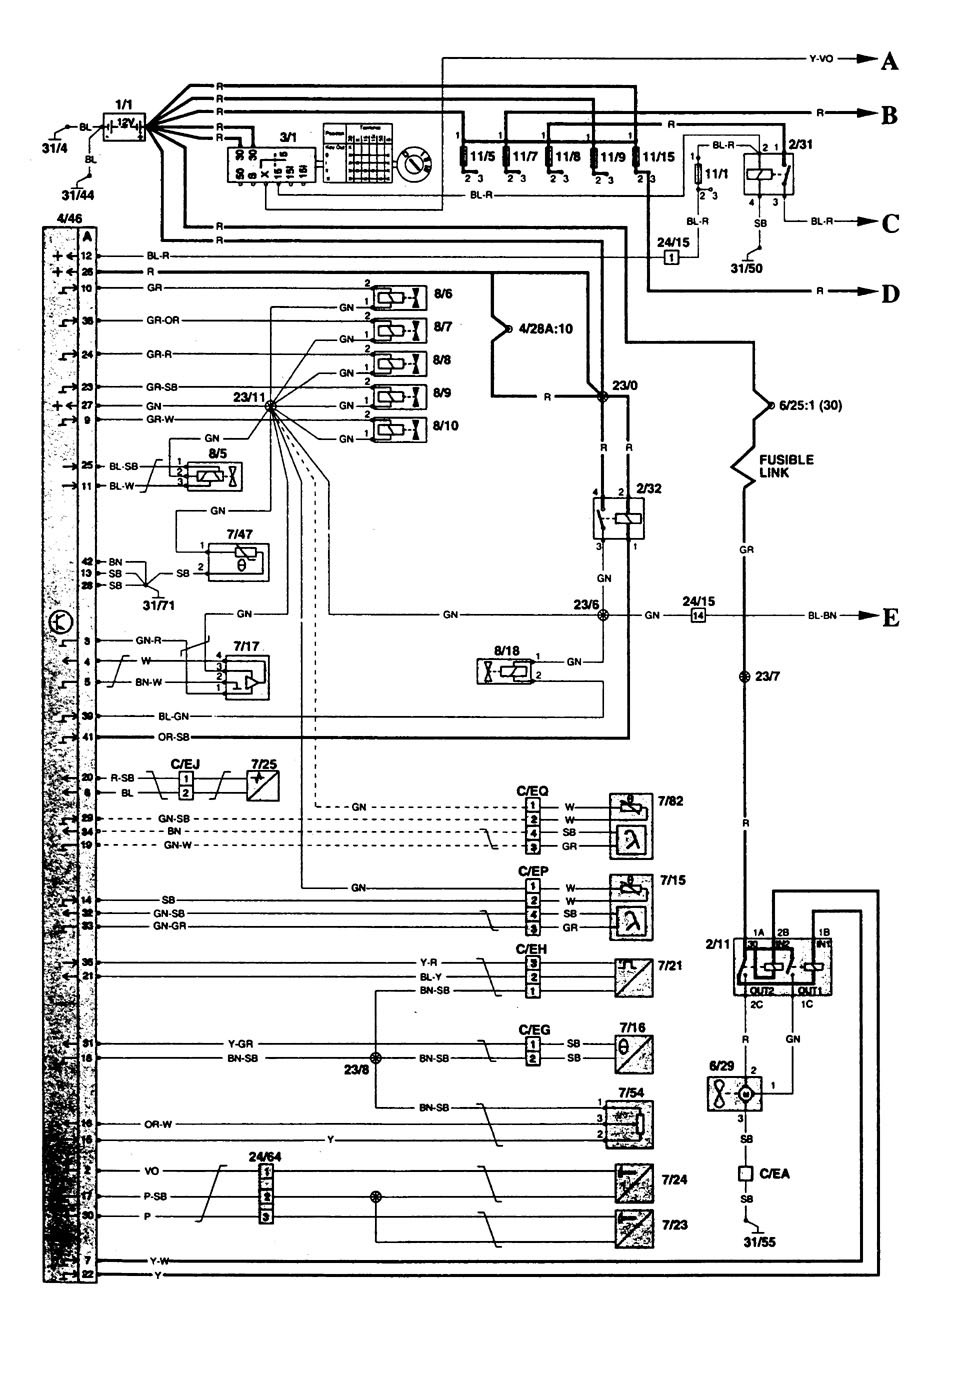 Volvo 850 Stereo Wiring Diagram Diagrams For 1999 V70 Engine 1996 Master Electric Motor 1998 S70 Radio